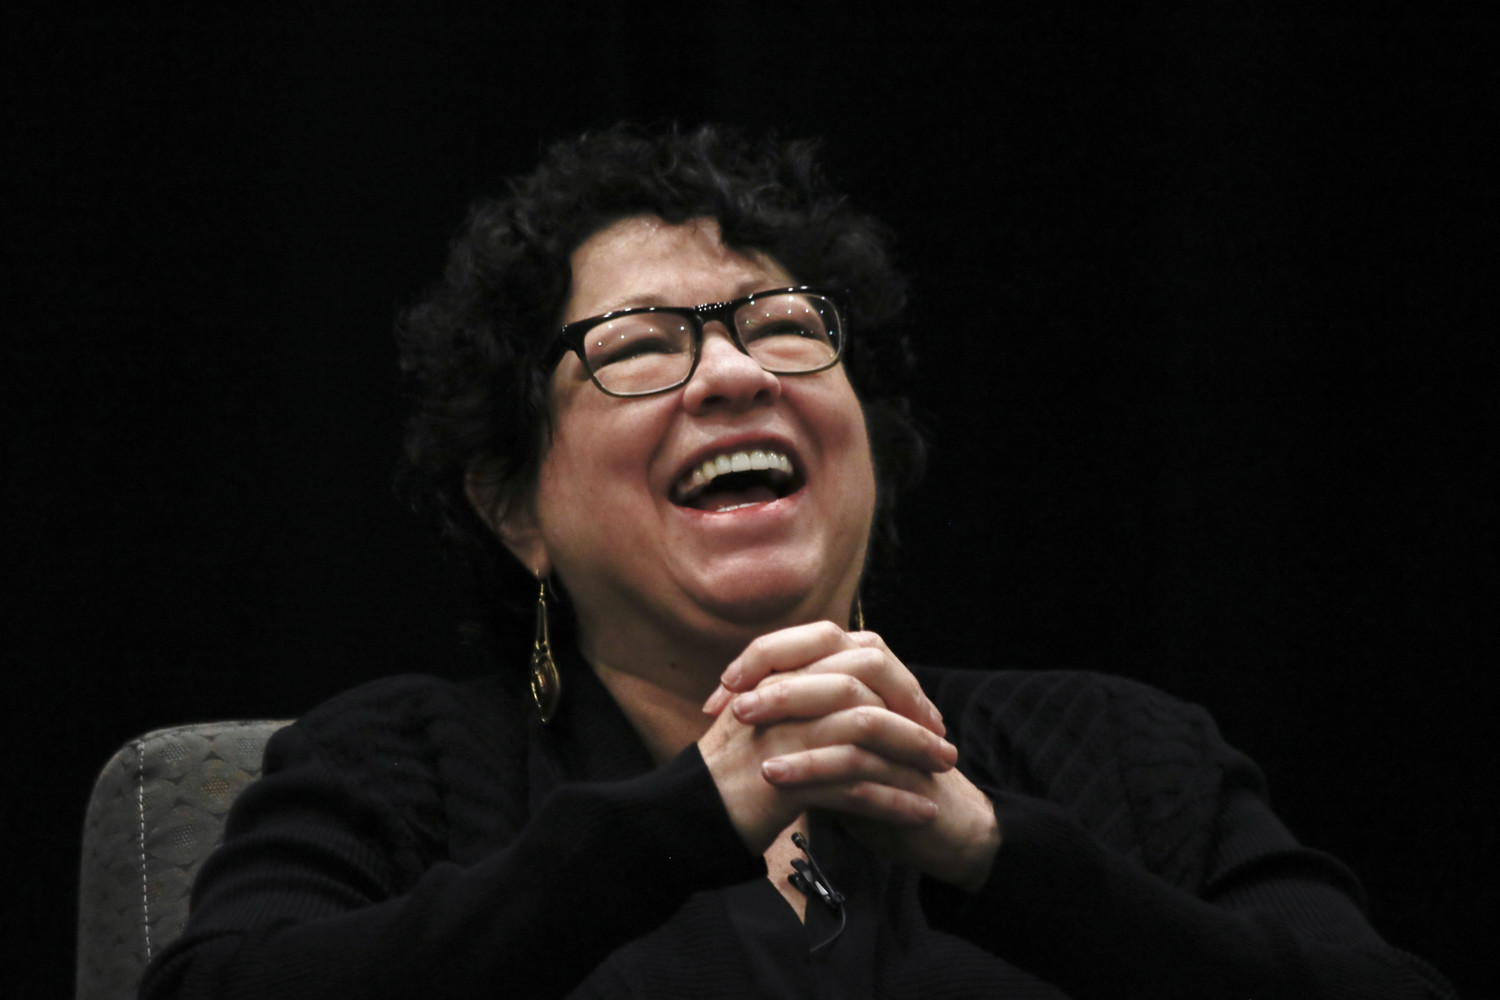 U.S. Supreme Court Justice Sonia Sotomayor made it clear that she did not want to miss the recent ALCS game between the New York Yankees and the Houston Astros during her visit at Hofstra University Law School on Monday. A lifelong Yankees fan, Sotomayor grew up in the shadow of Yankee Stadium in the Bronx.